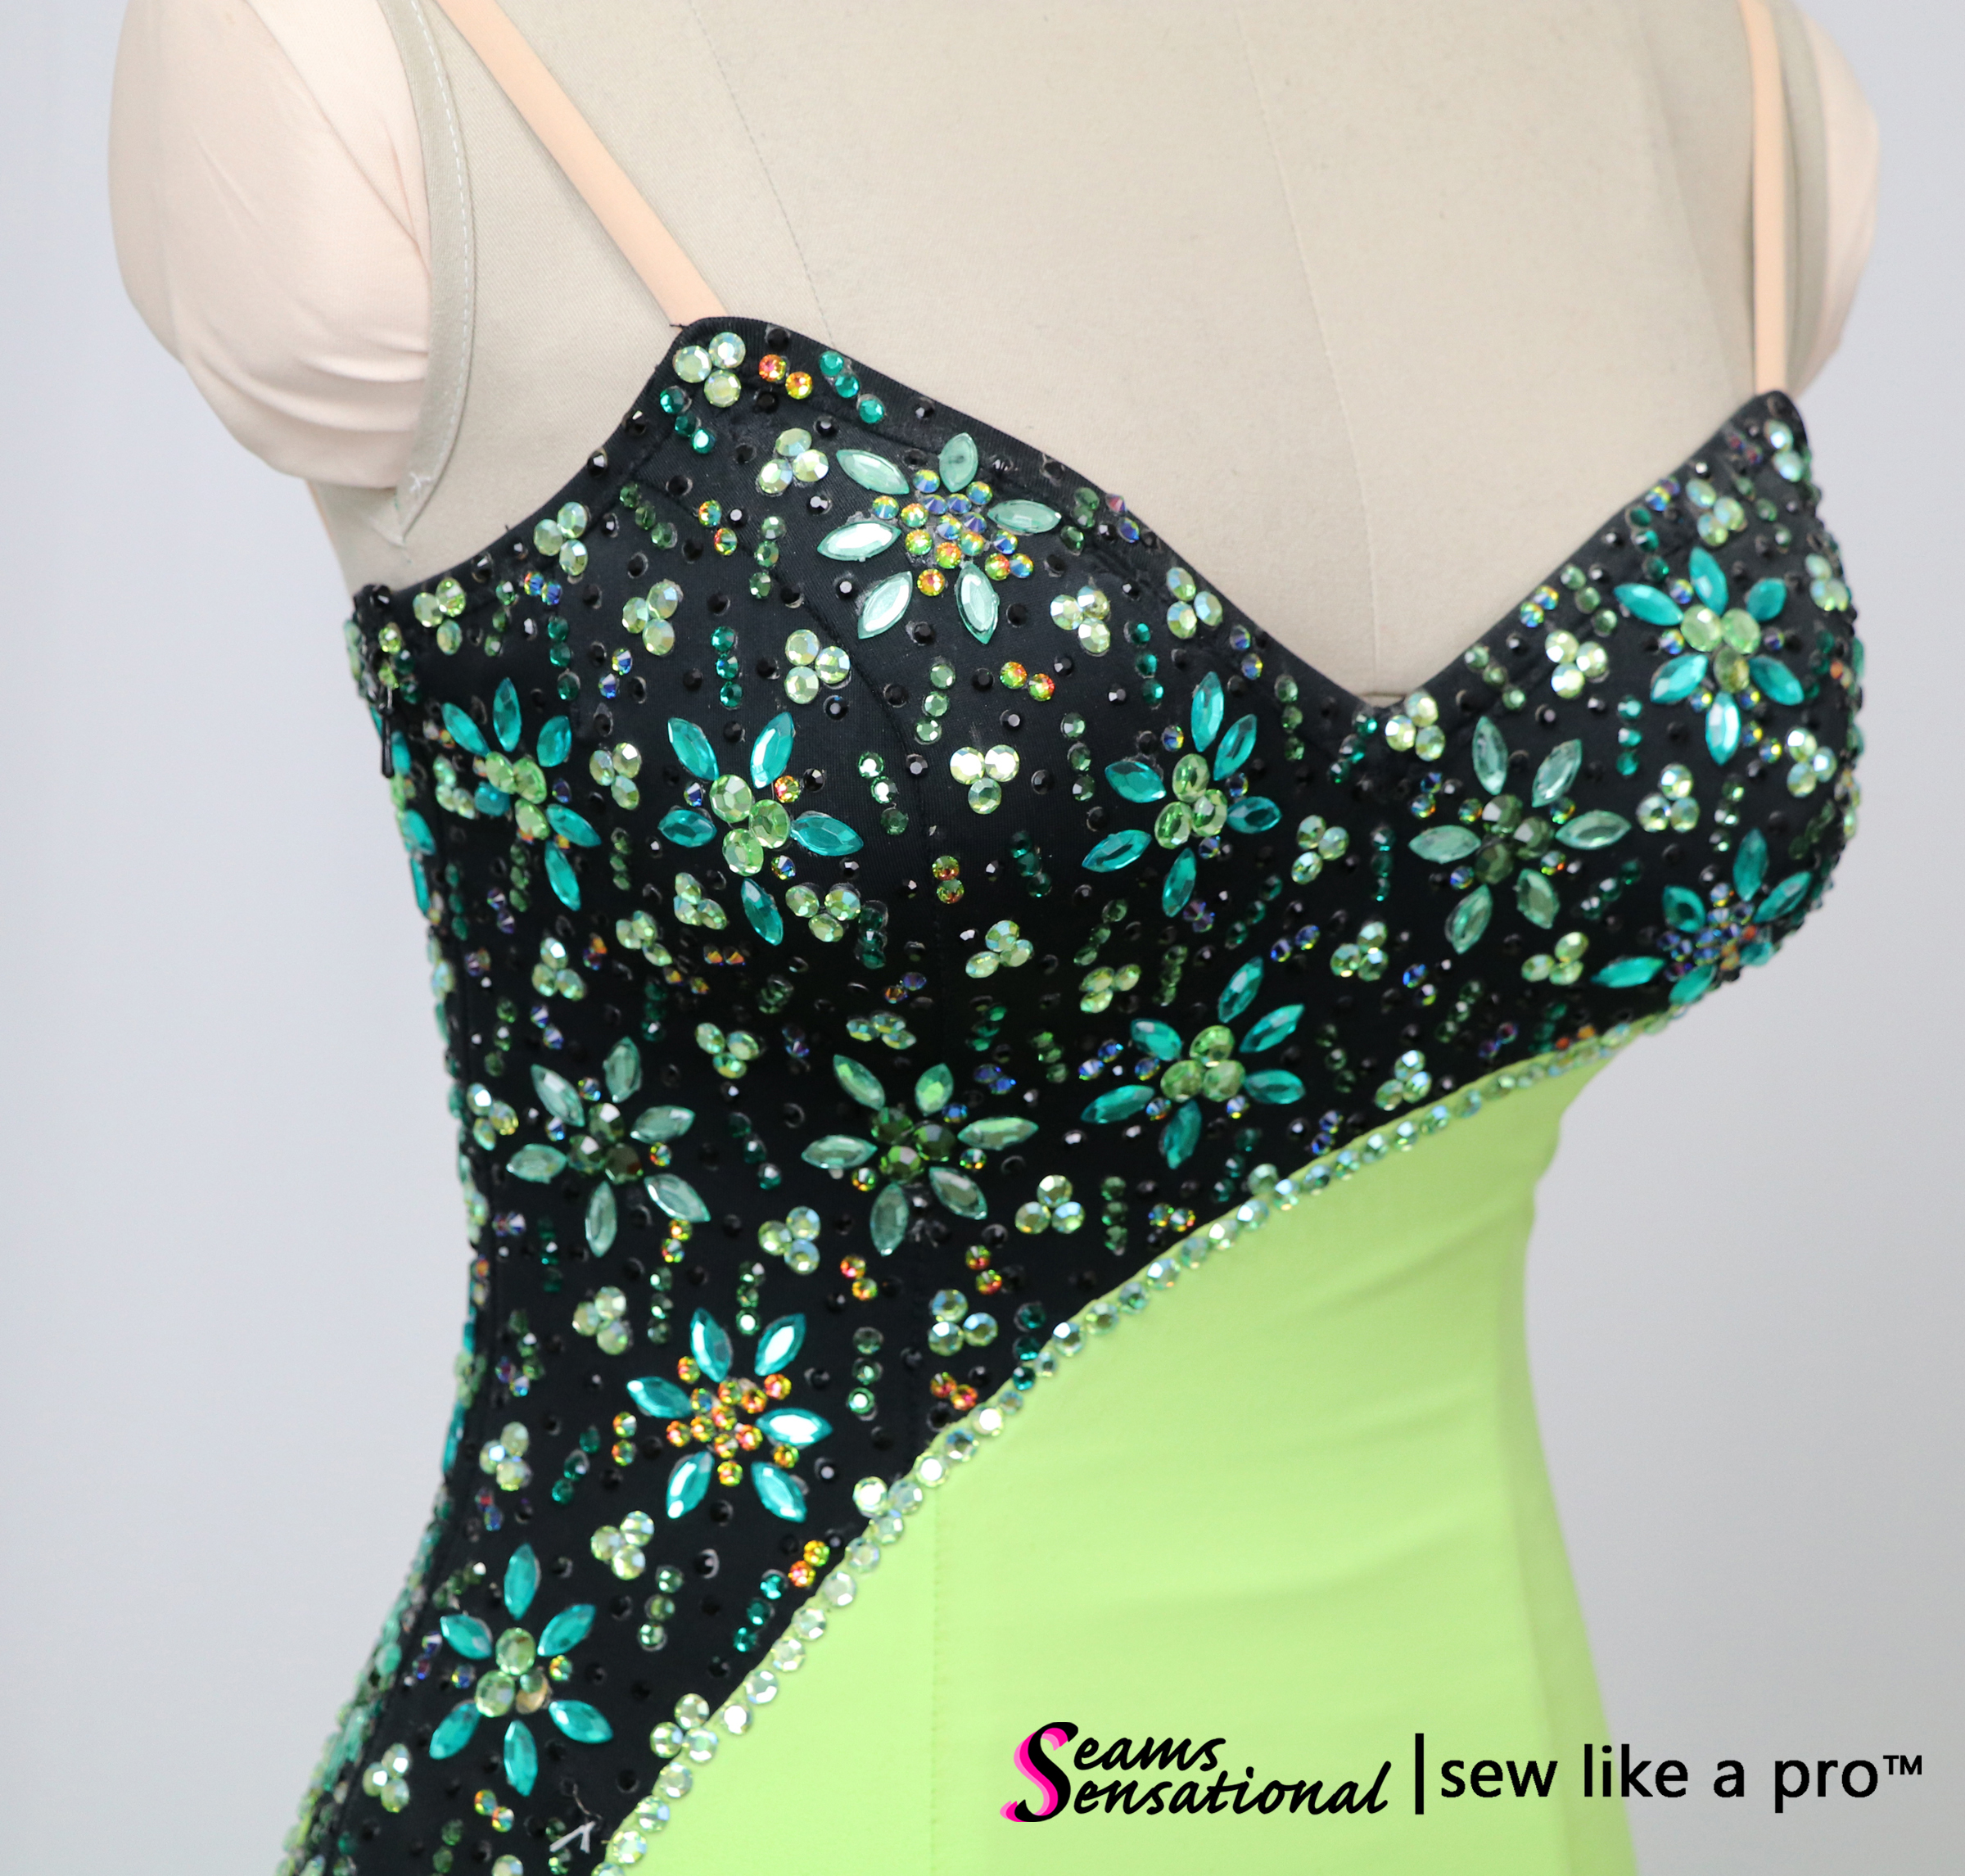 Key design element: feminine rhinestoning pattern on the competition Dancesport ballgown